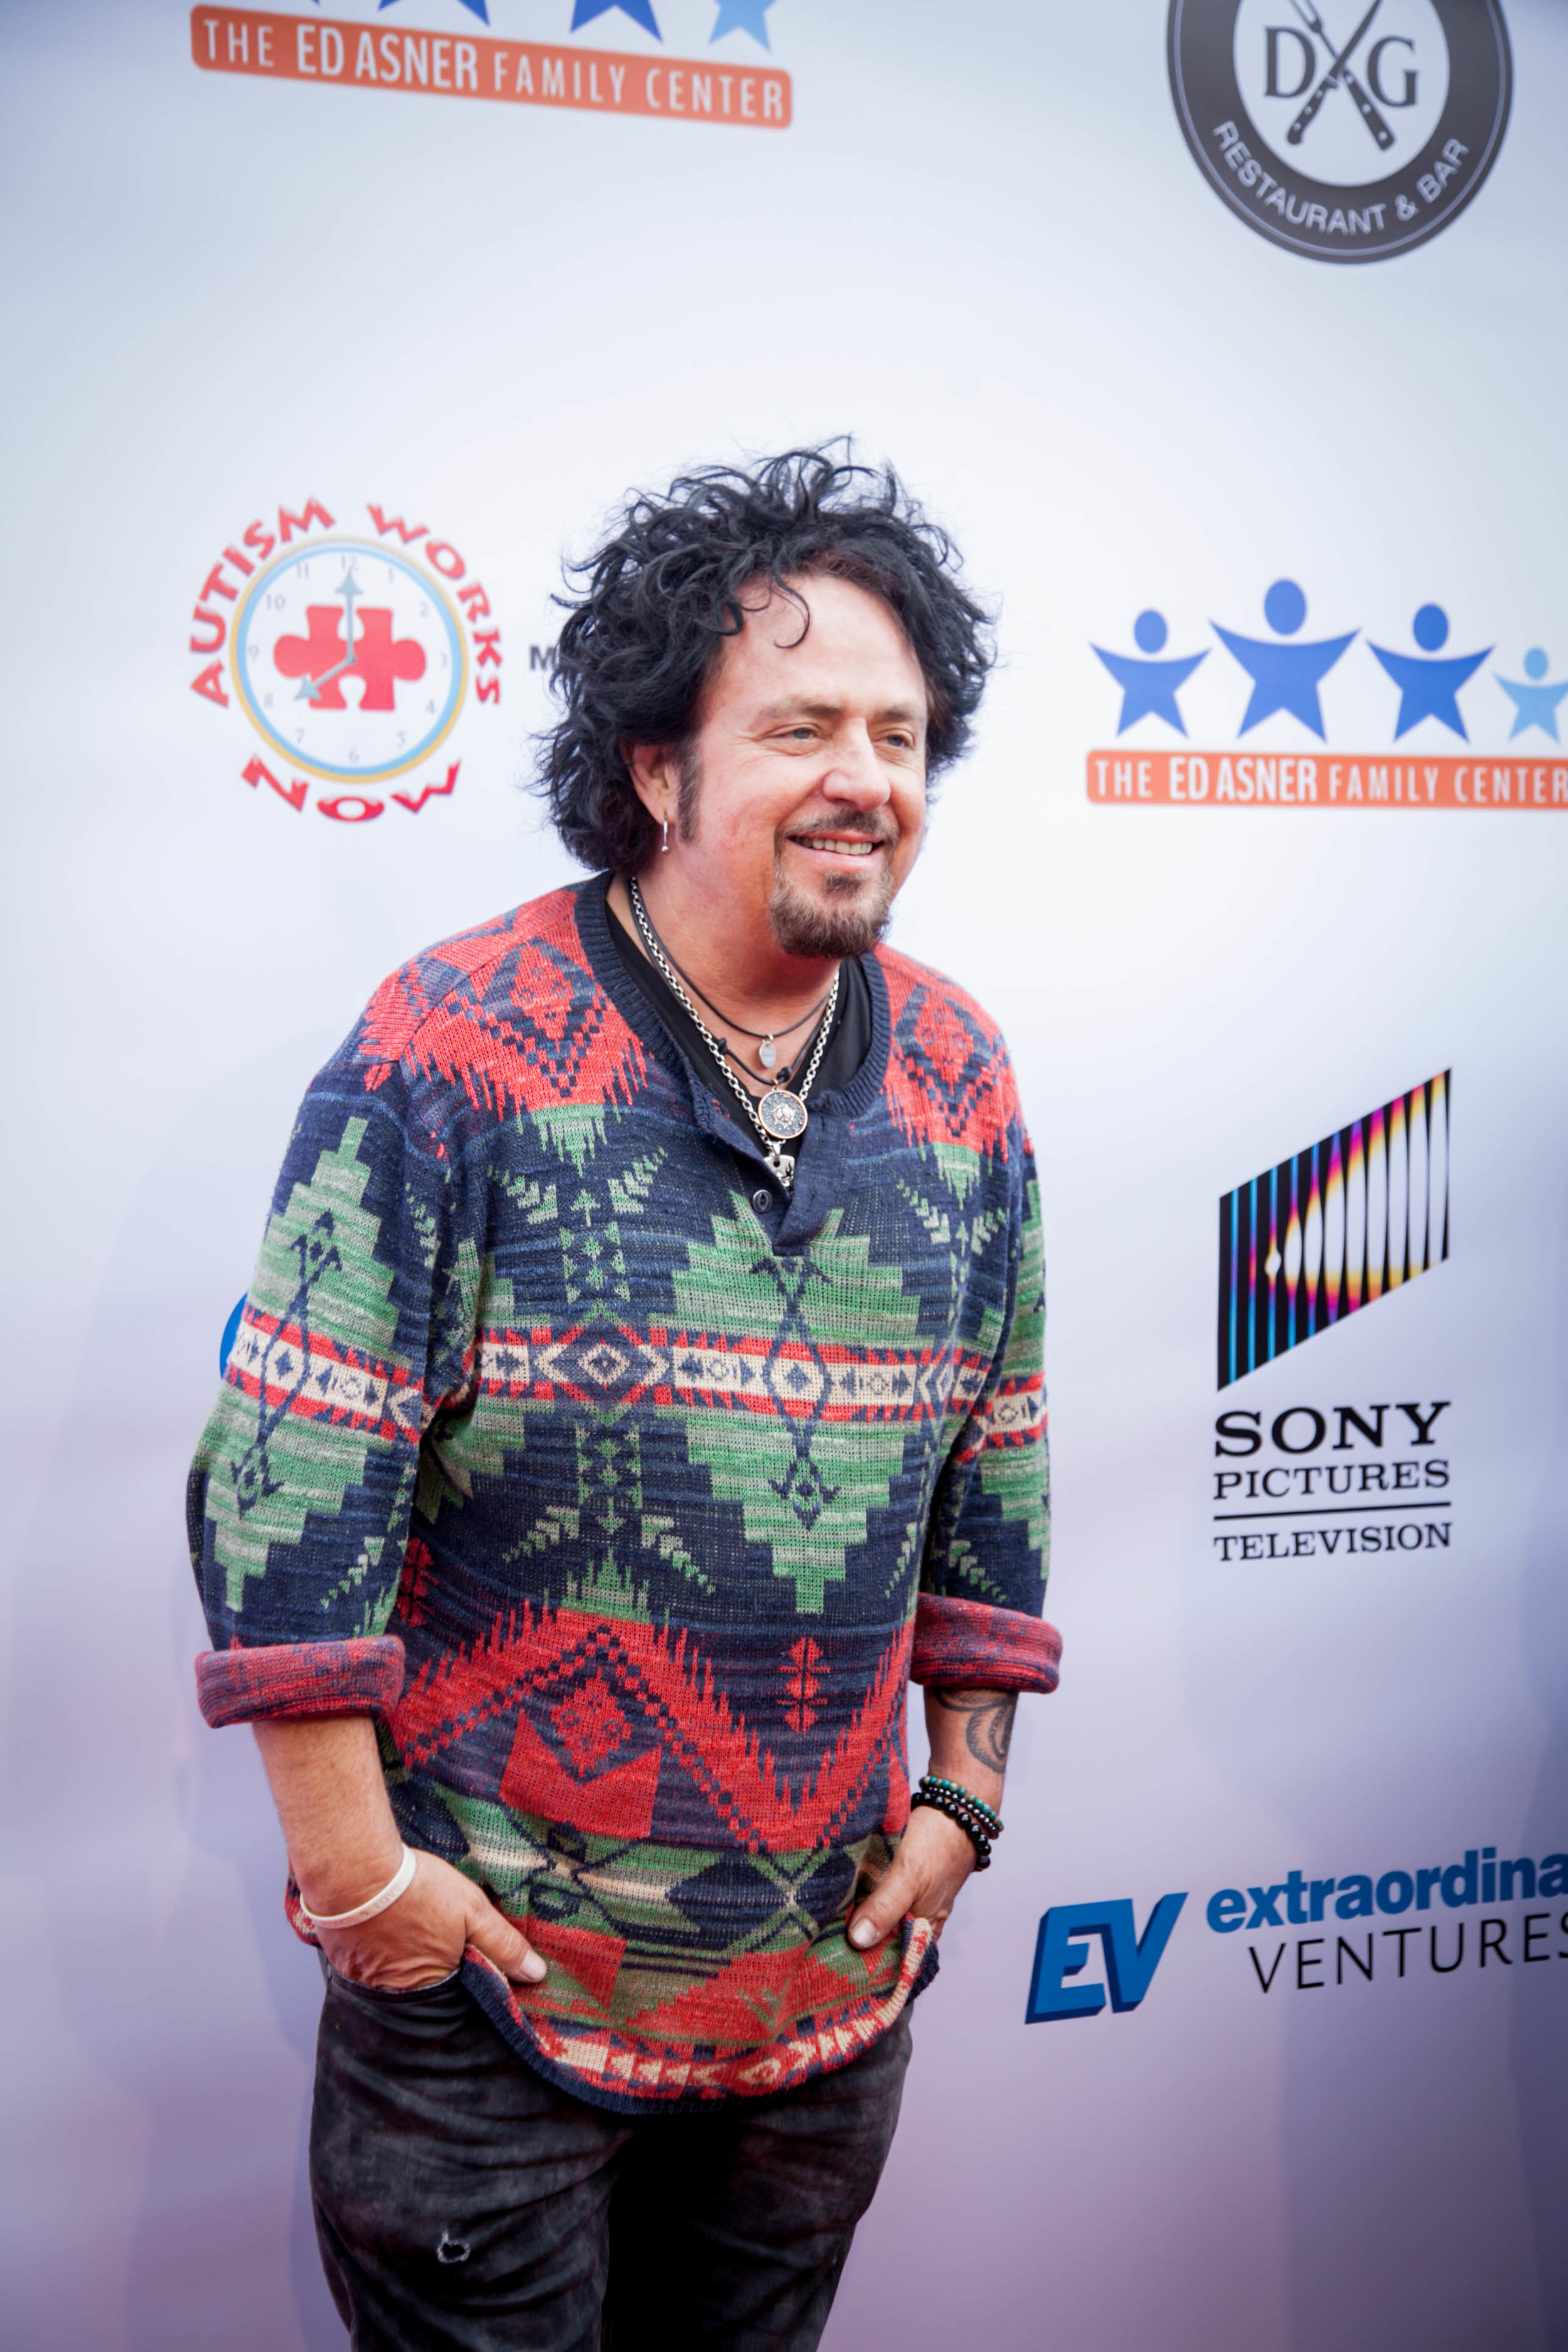 Steve Lukather. Photo by Erin Poole for Average Socialite.